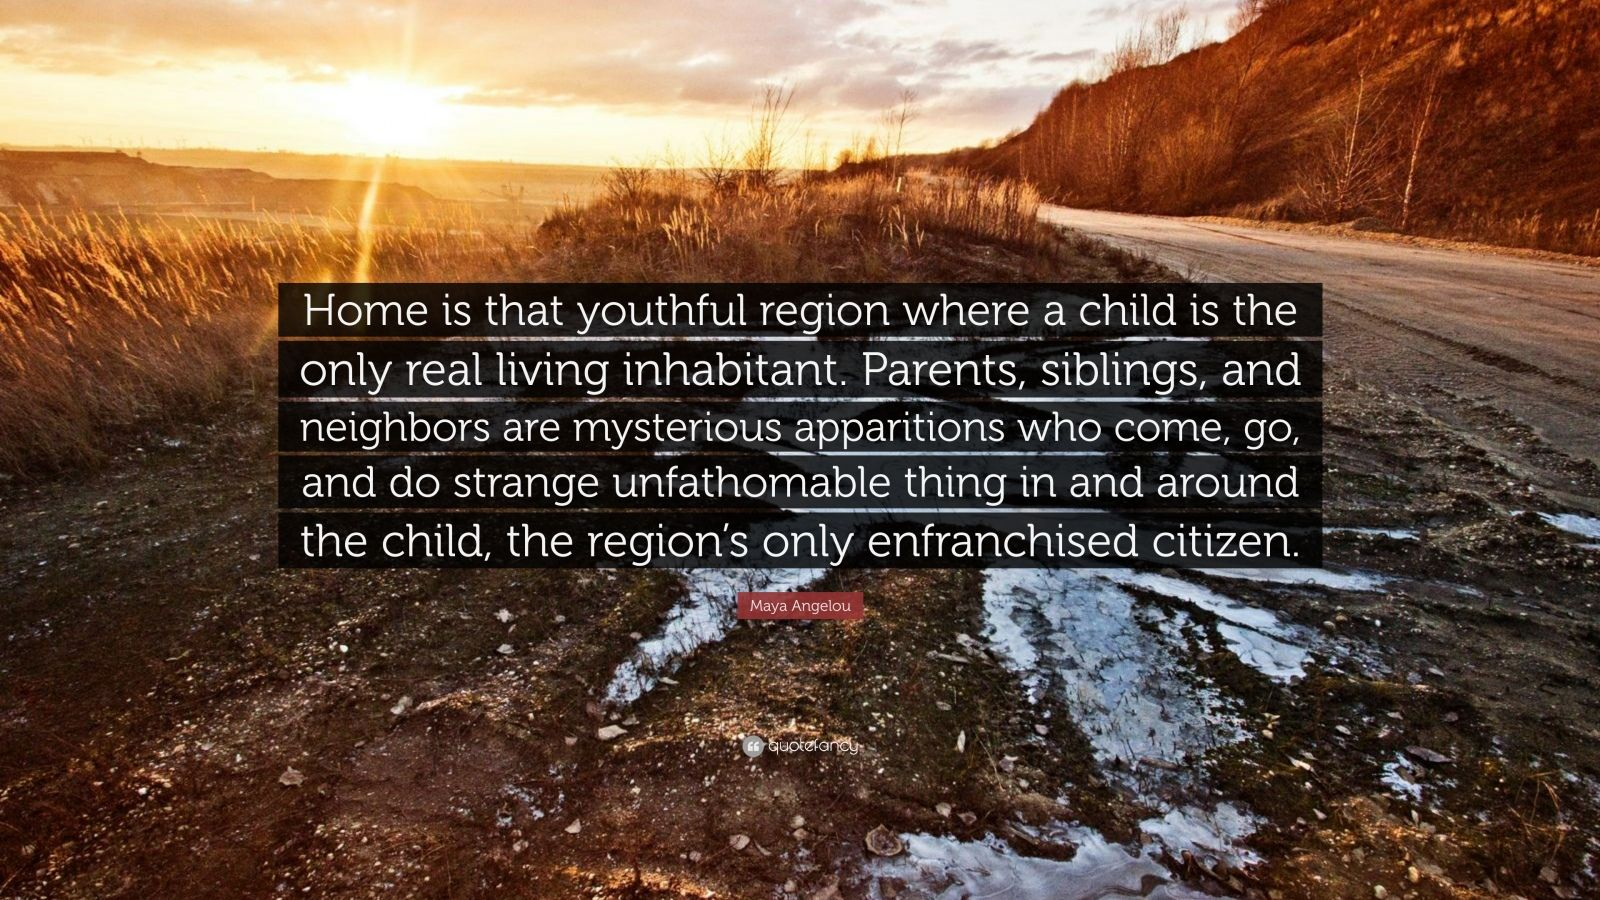 """Maya Angelou Quote: """"Home is that youthful region where a child is the only real living inhabitant. Parents, siblings, and neighbors are mysterious apparitions who come, go, and do strange unfathomable thing in and around the child, the region's only enfranchised citizen."""""""